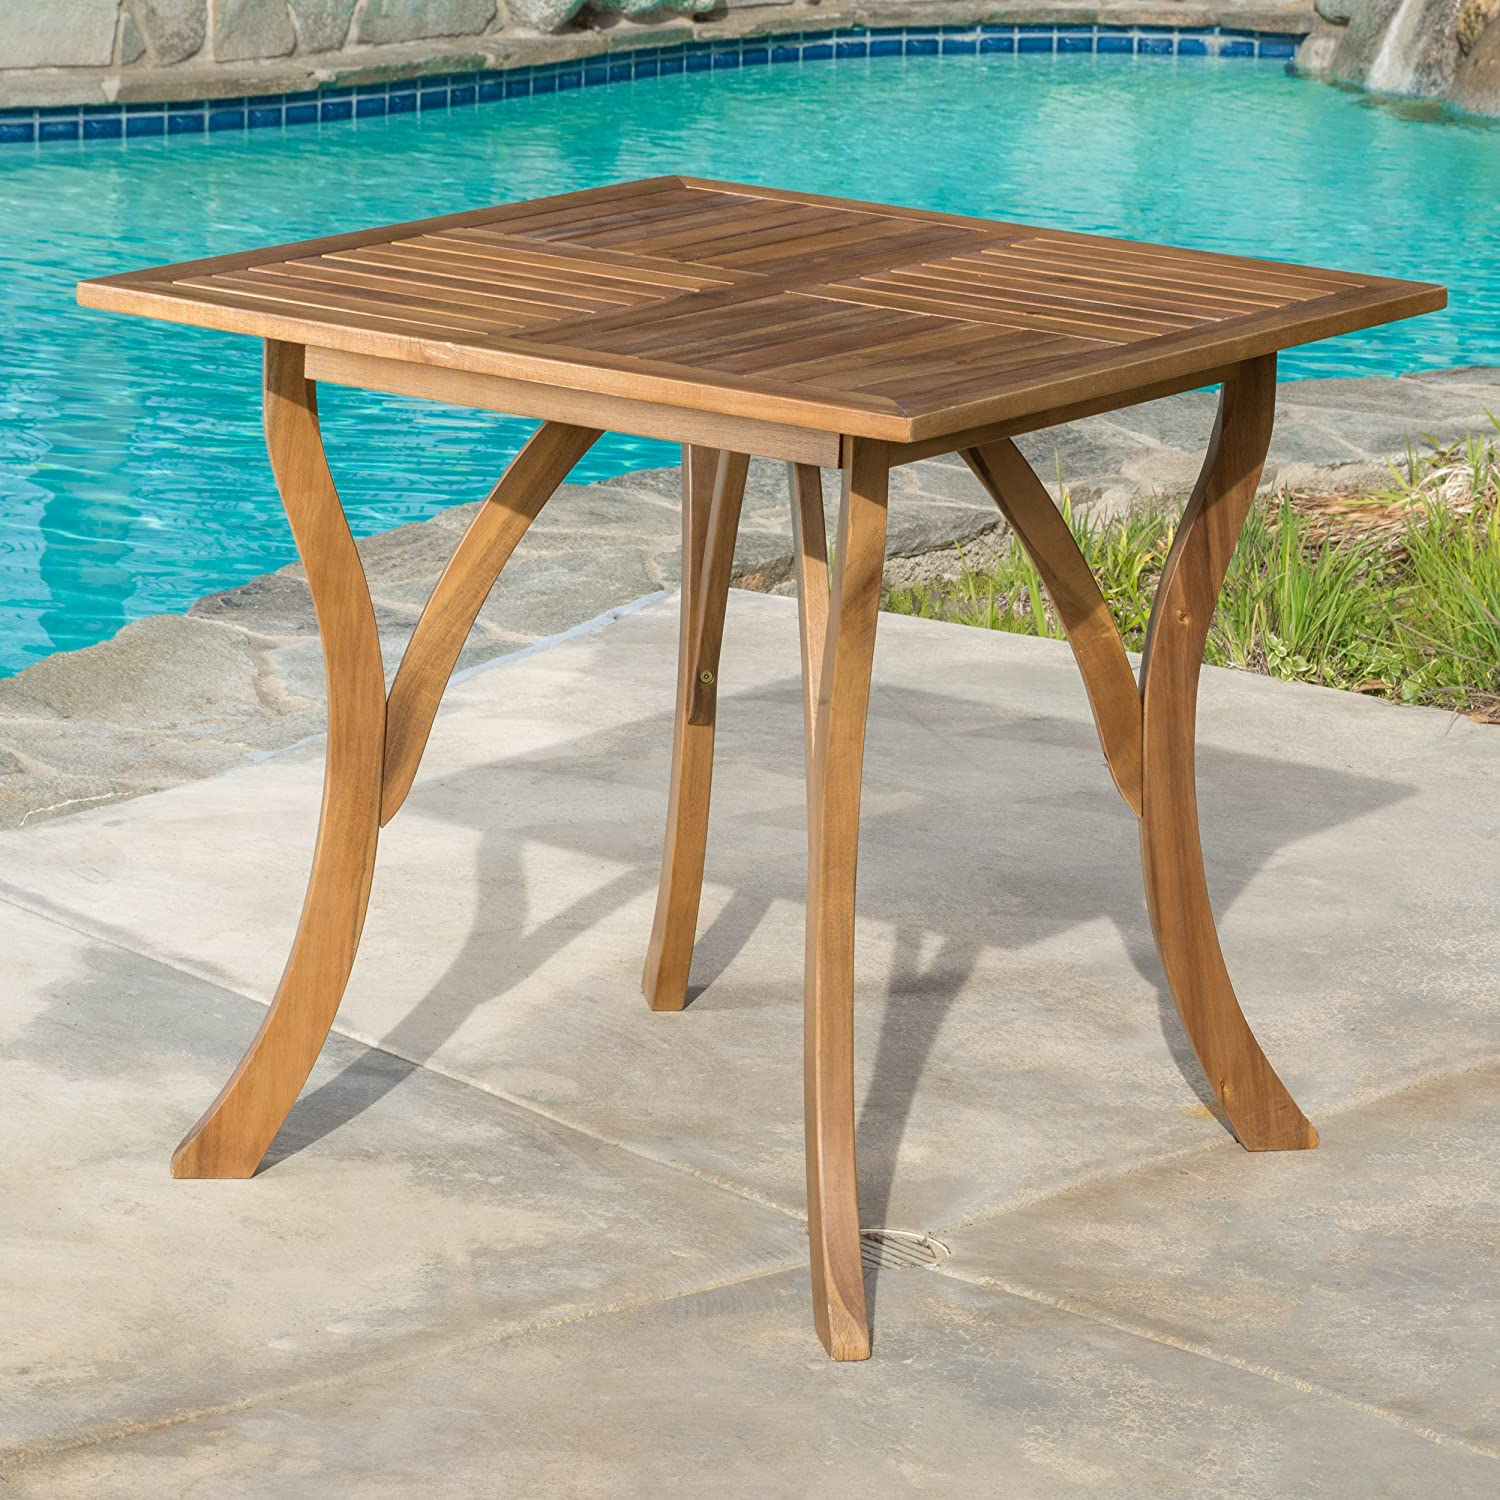 patio wood design outdoor products teak furniture interior